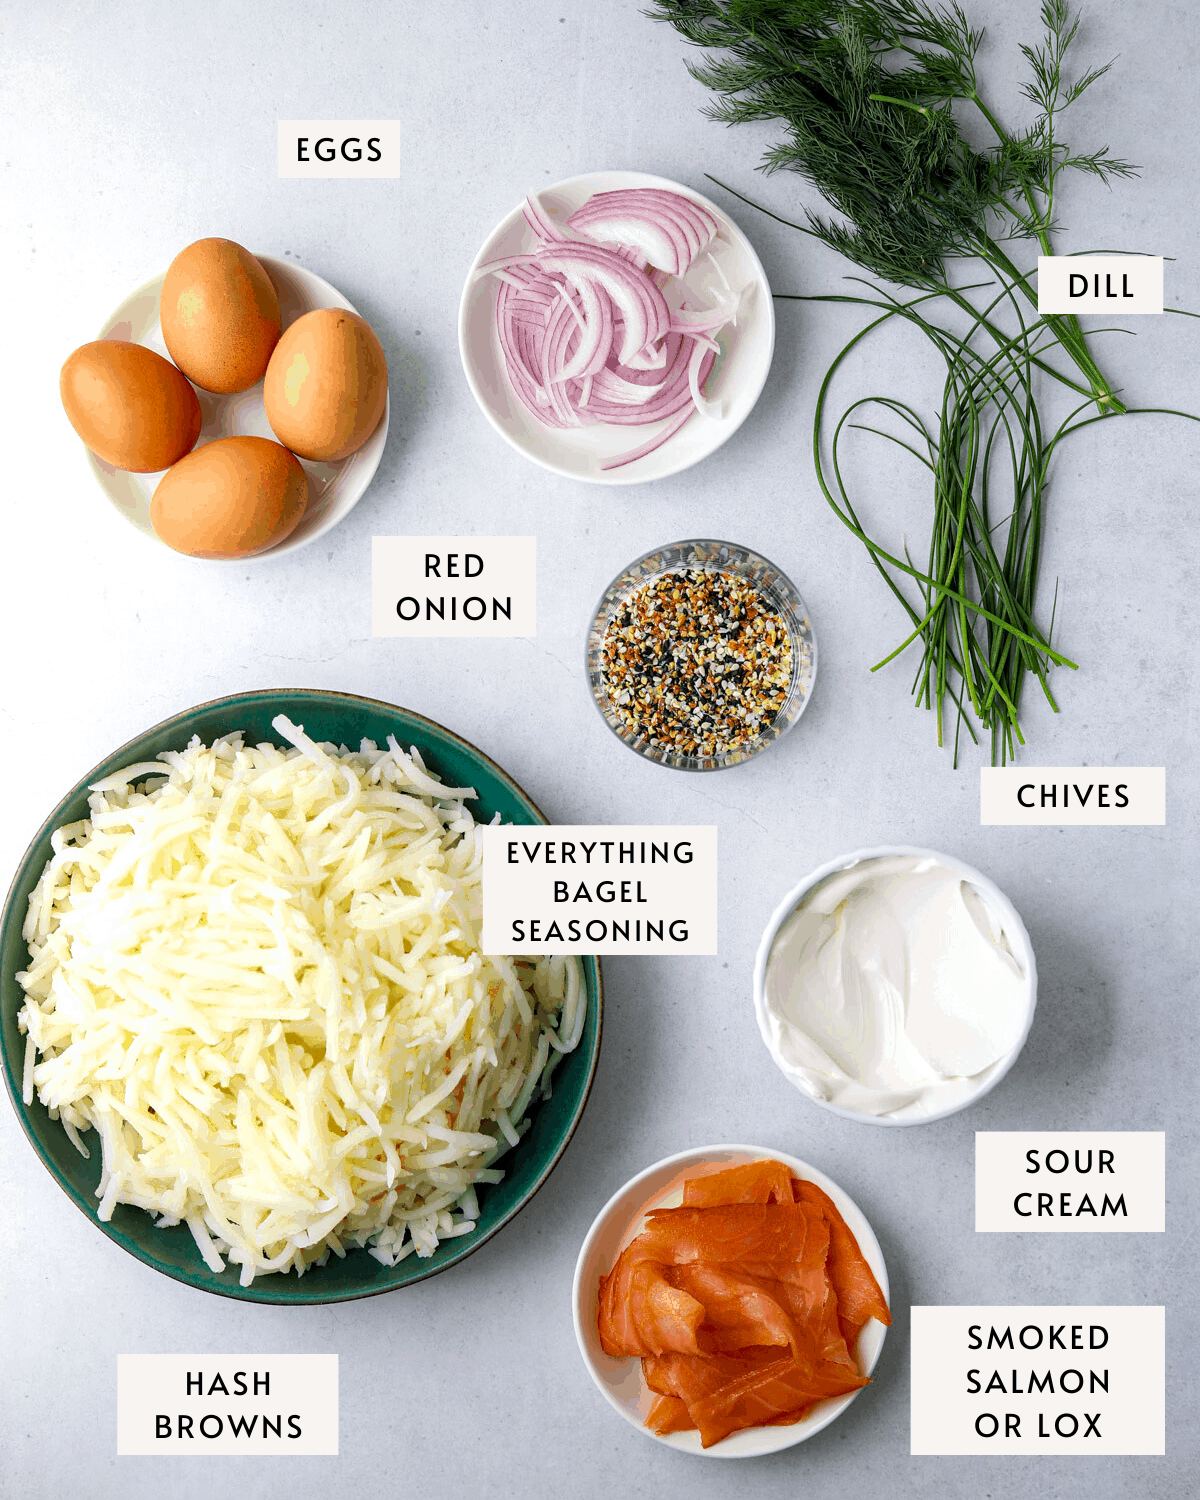 recipe ingredients individually portioned. a bowl of hasbrowns, a cup of sour cream, a plate of smoked salmon, 4 eggs, herbs and onion.